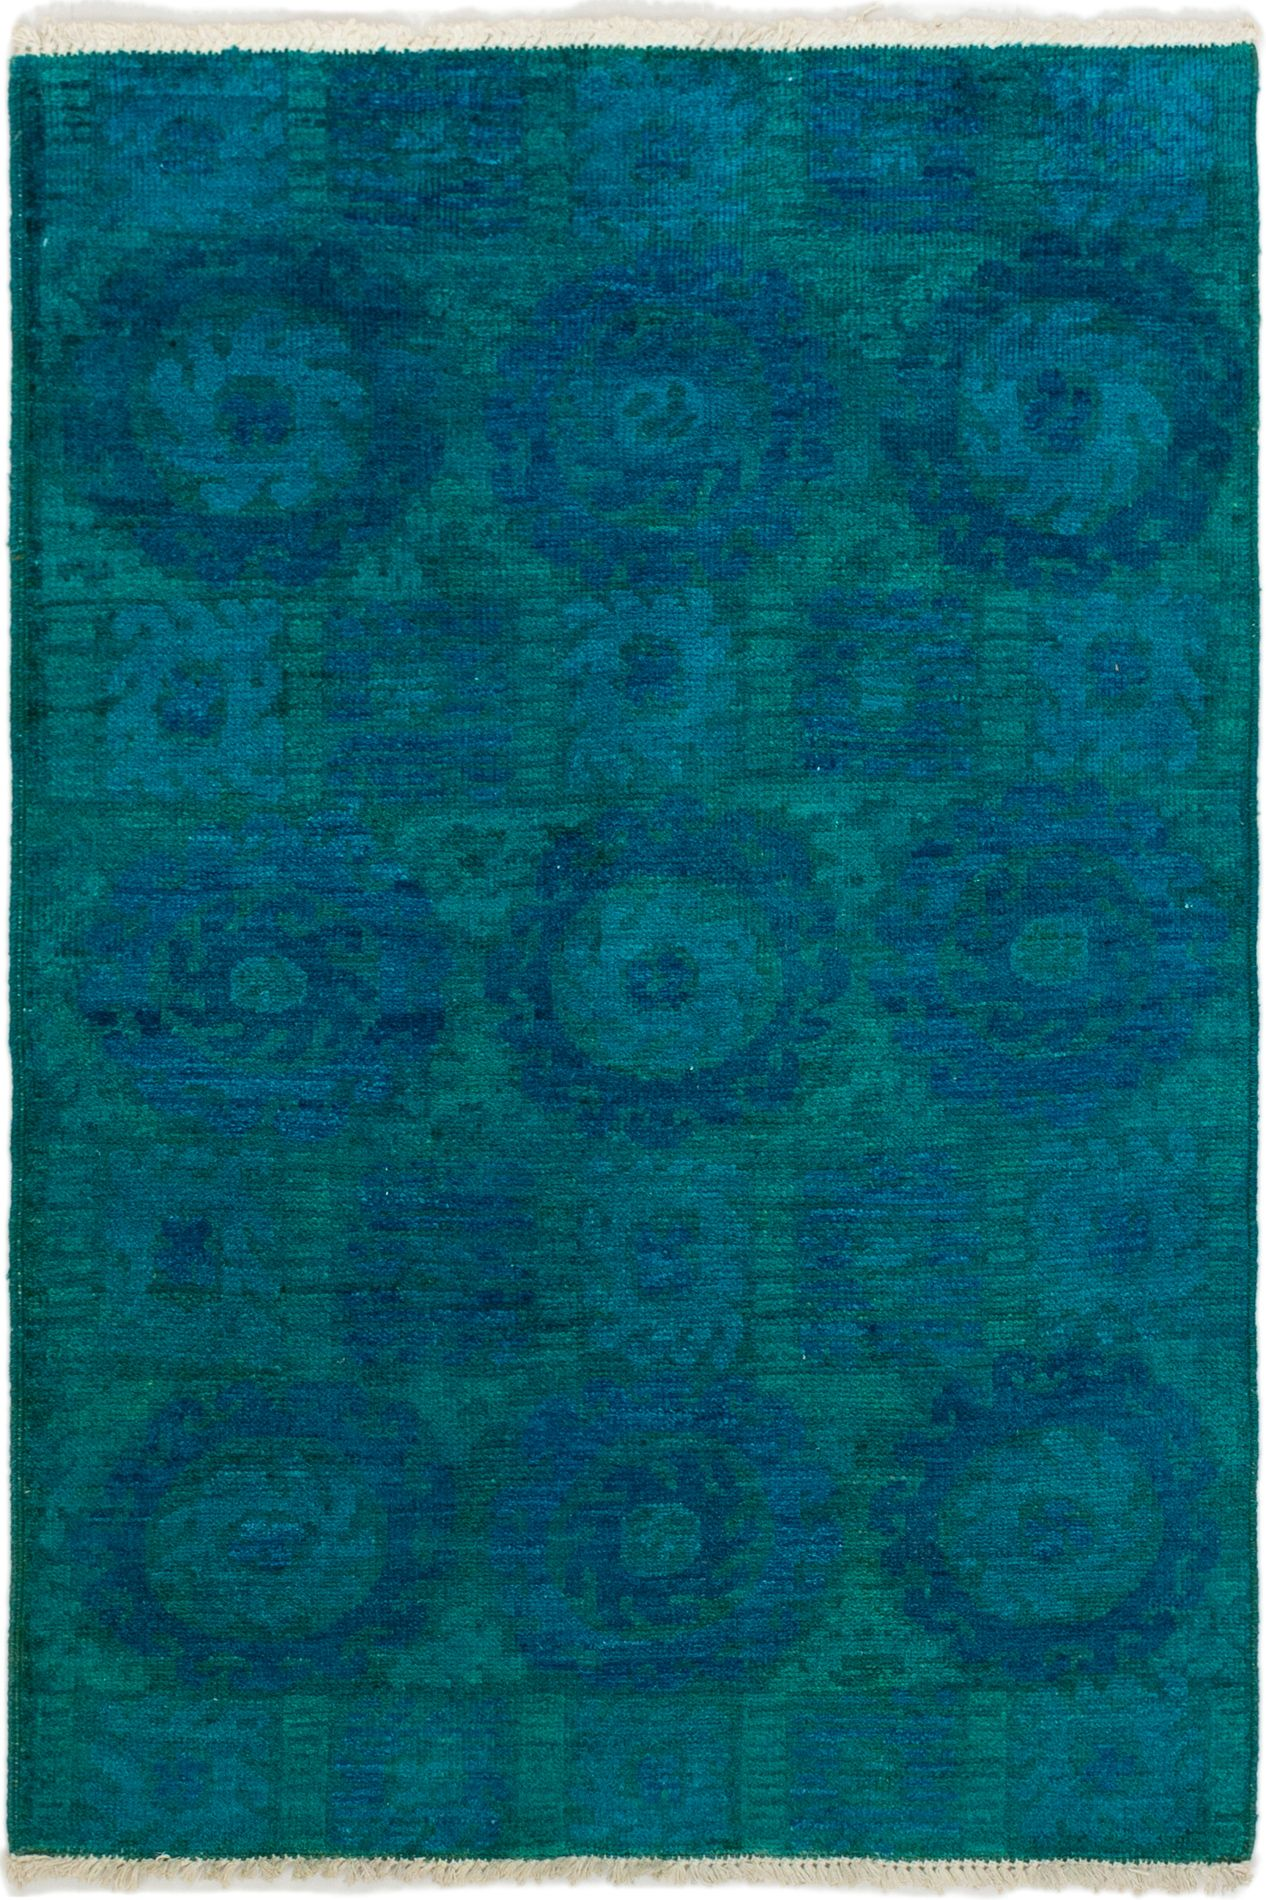 """Hand-knotted Vibrance Blue Wool Rug 4'2"""" x 6'0"""" Size: 4'2"""" x 6'0"""""""